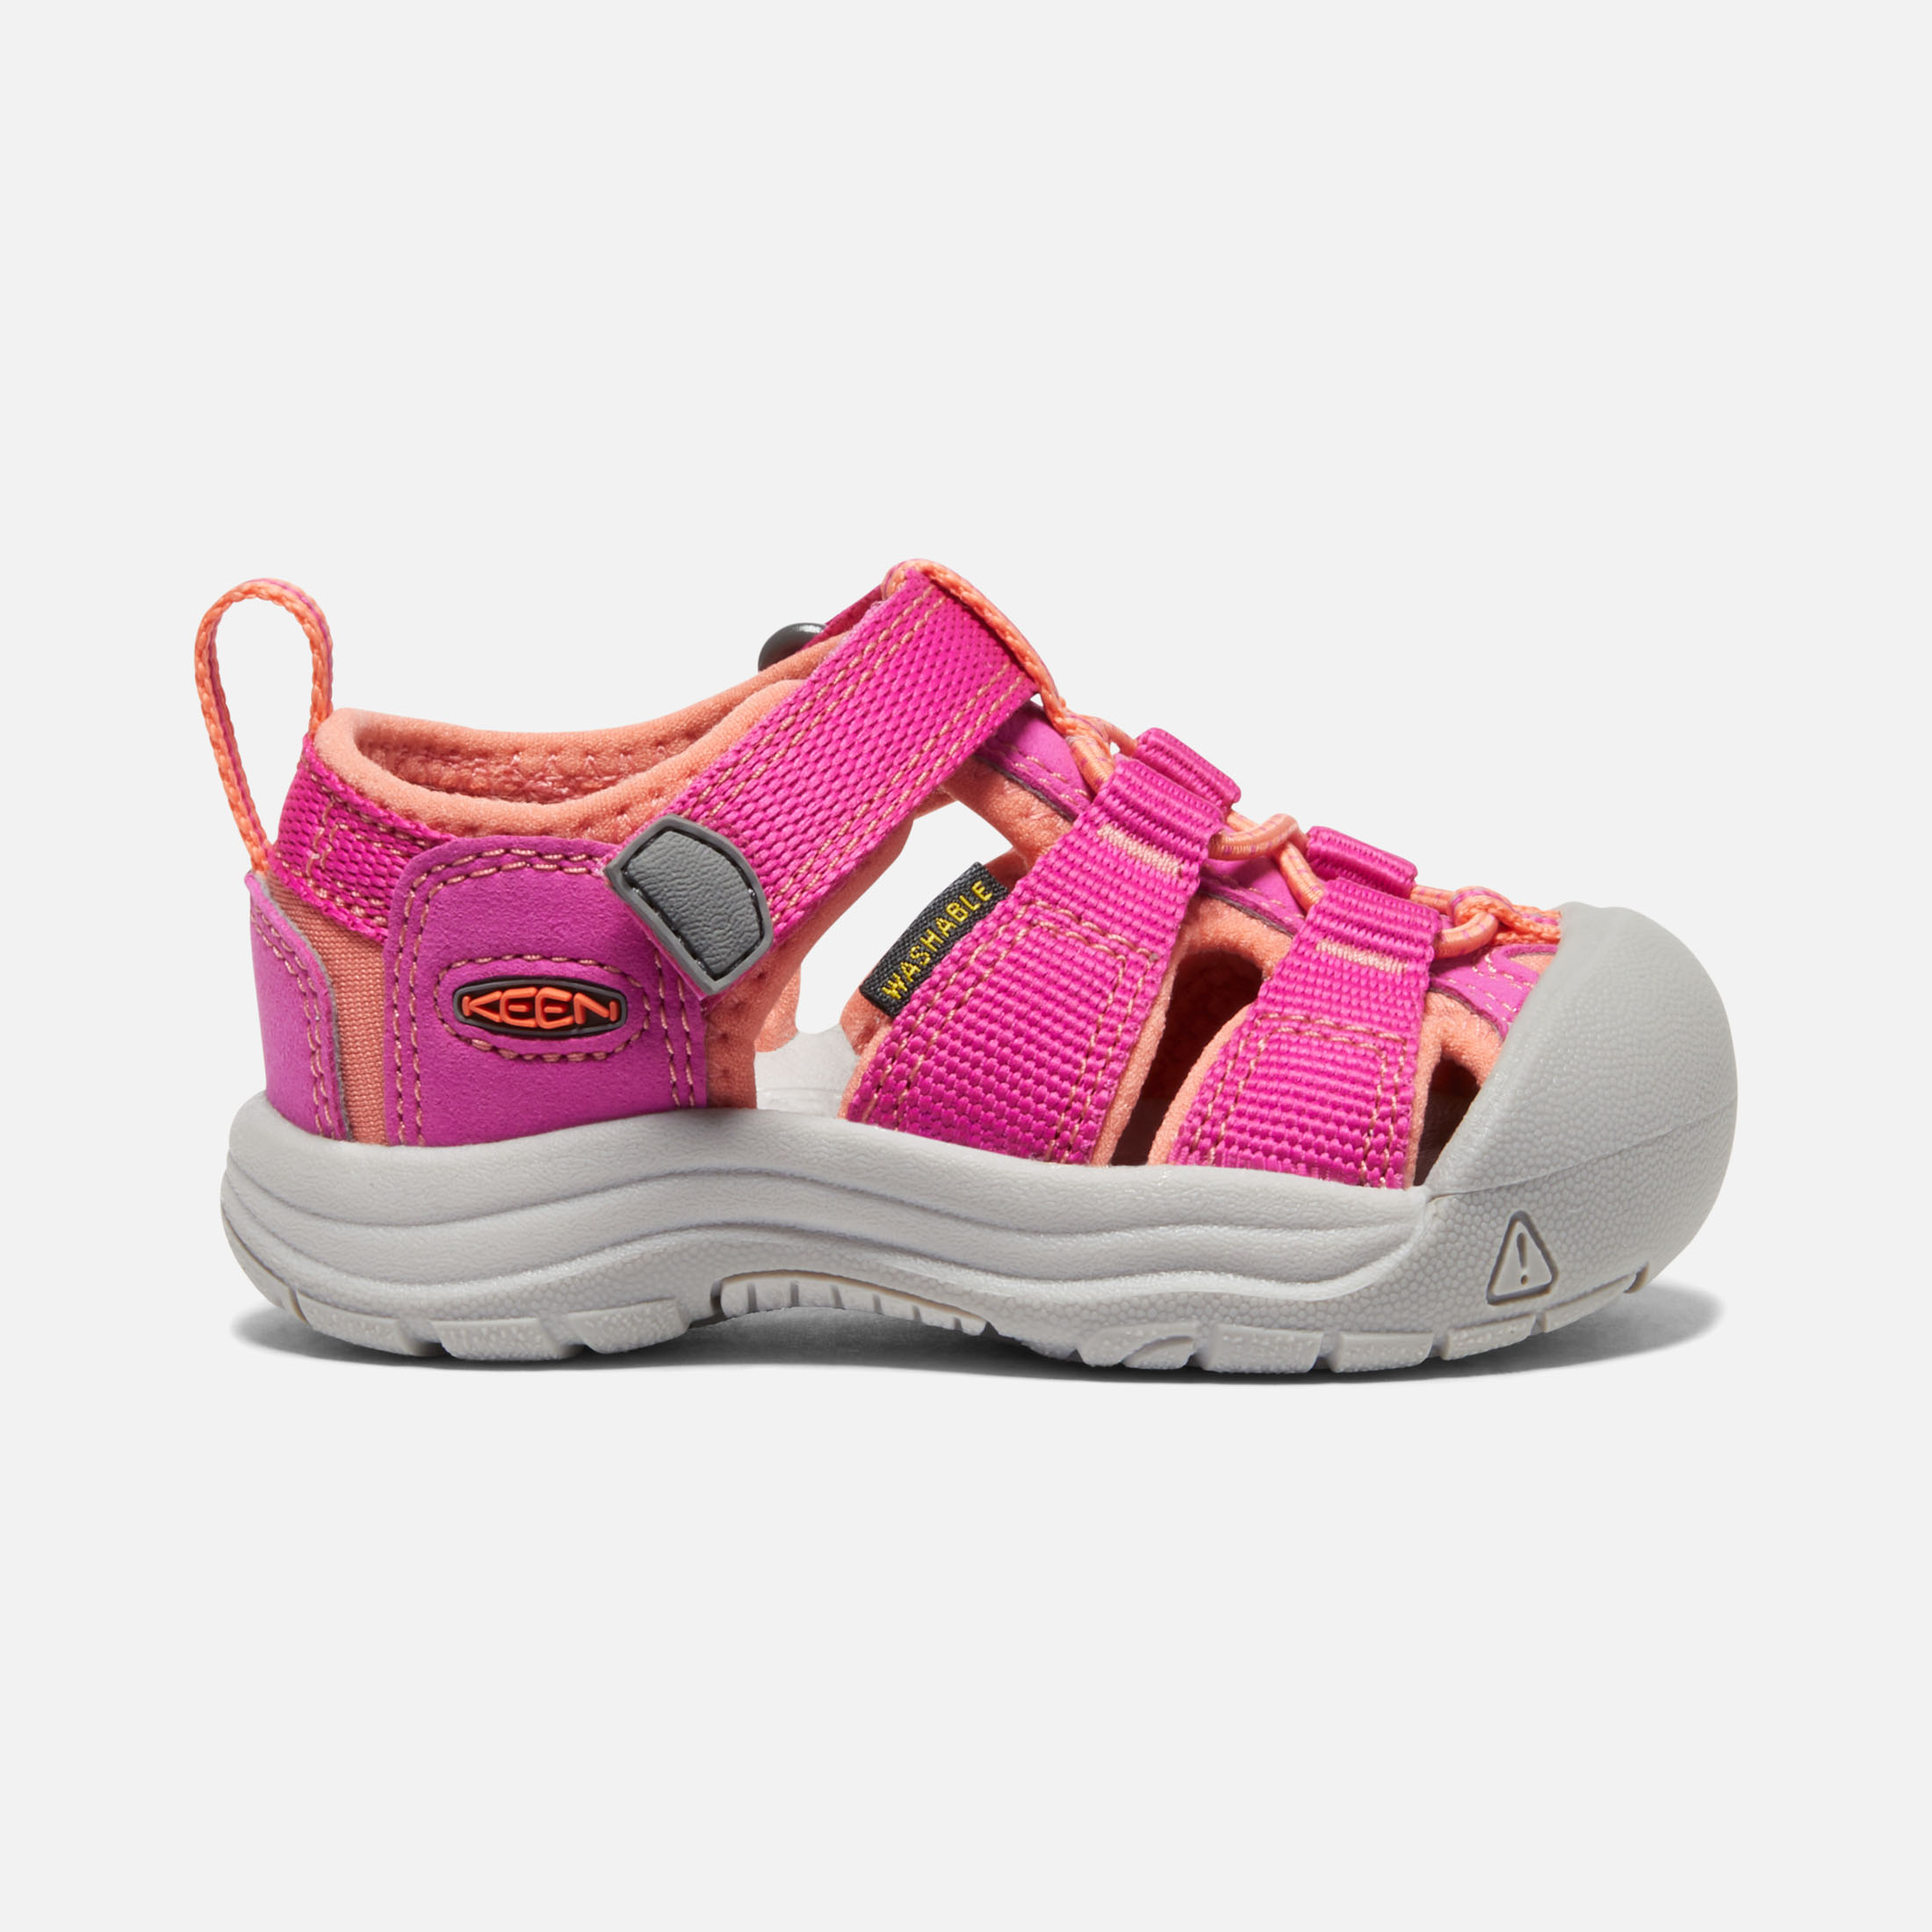 Toddlers' Newport H2 Sandals - Easy-On